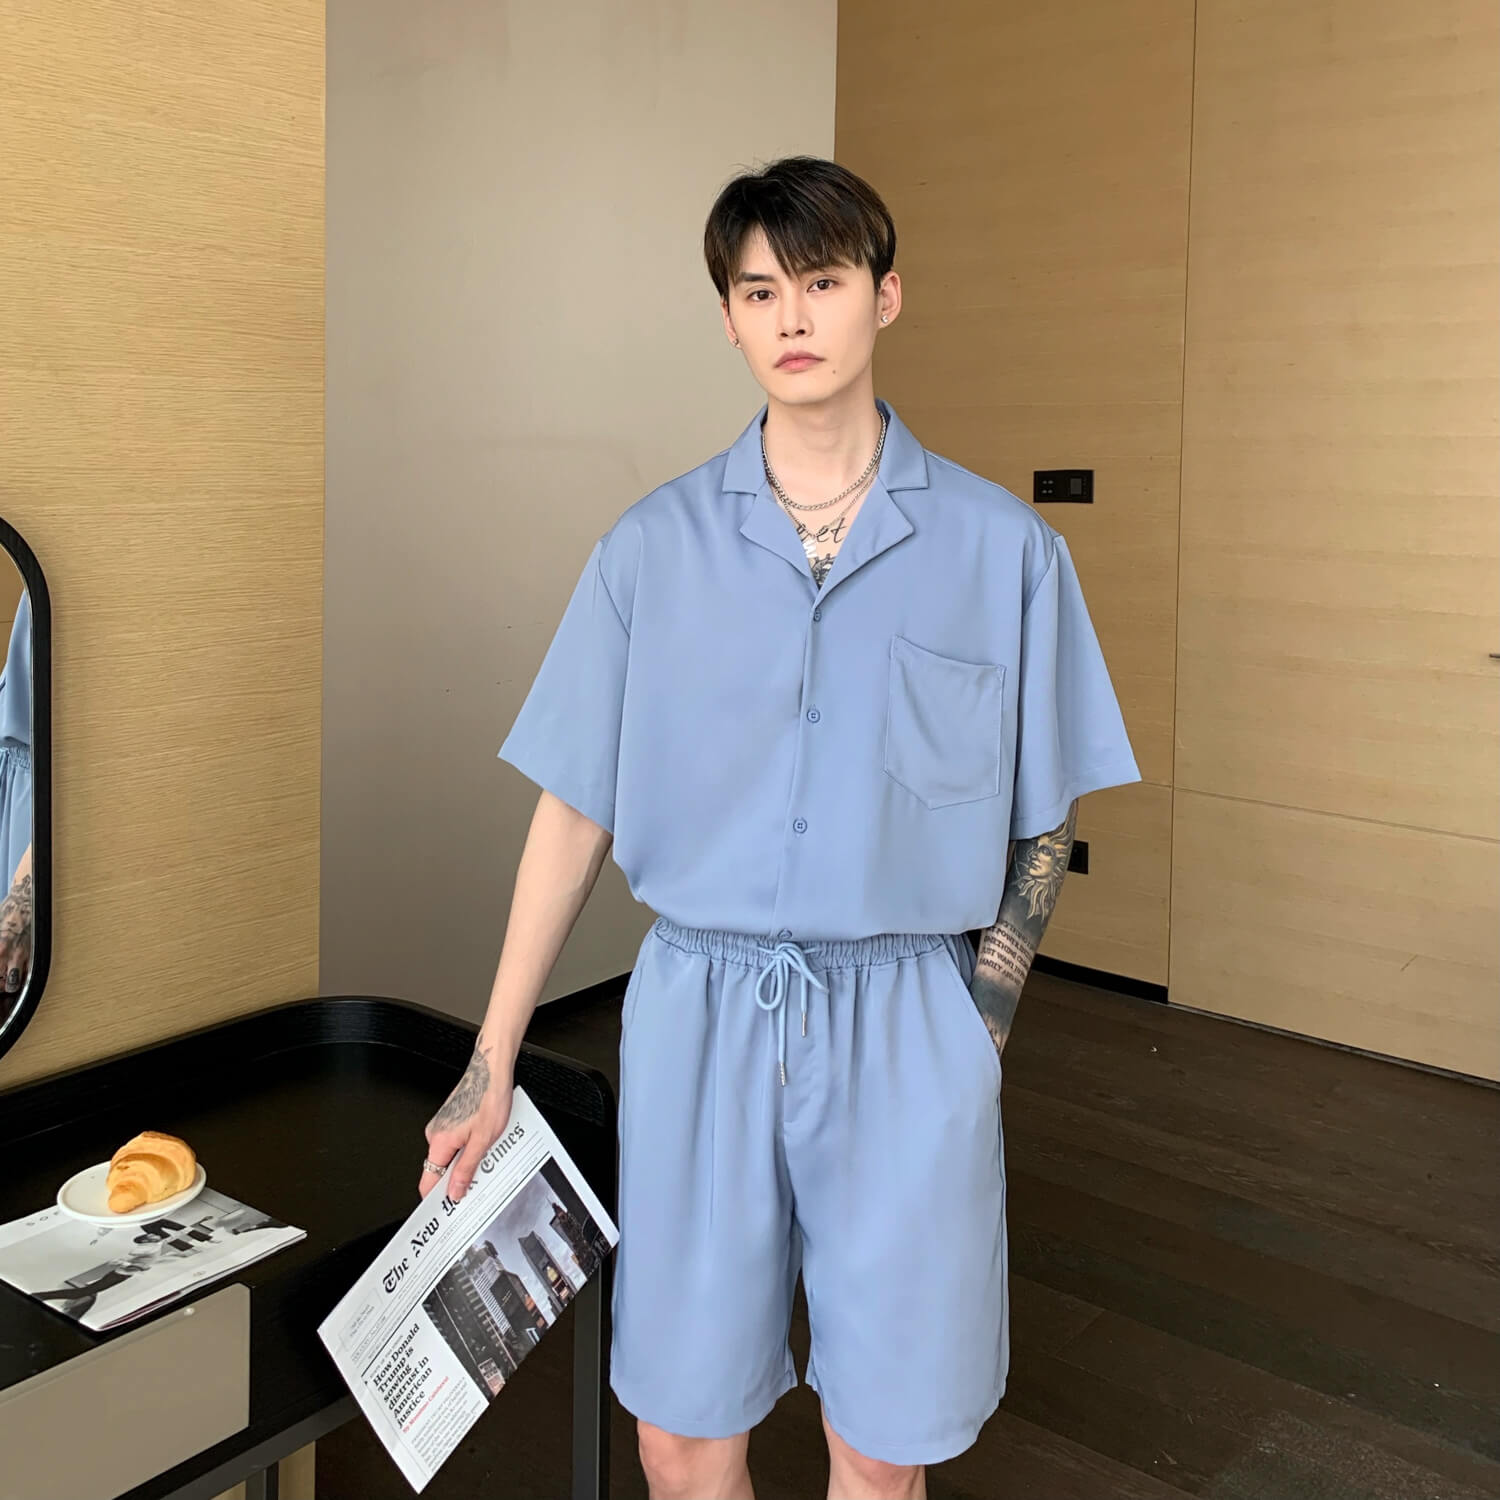 Cui Layout Studio Casual Neat Suit Shirt & Shorts Blue